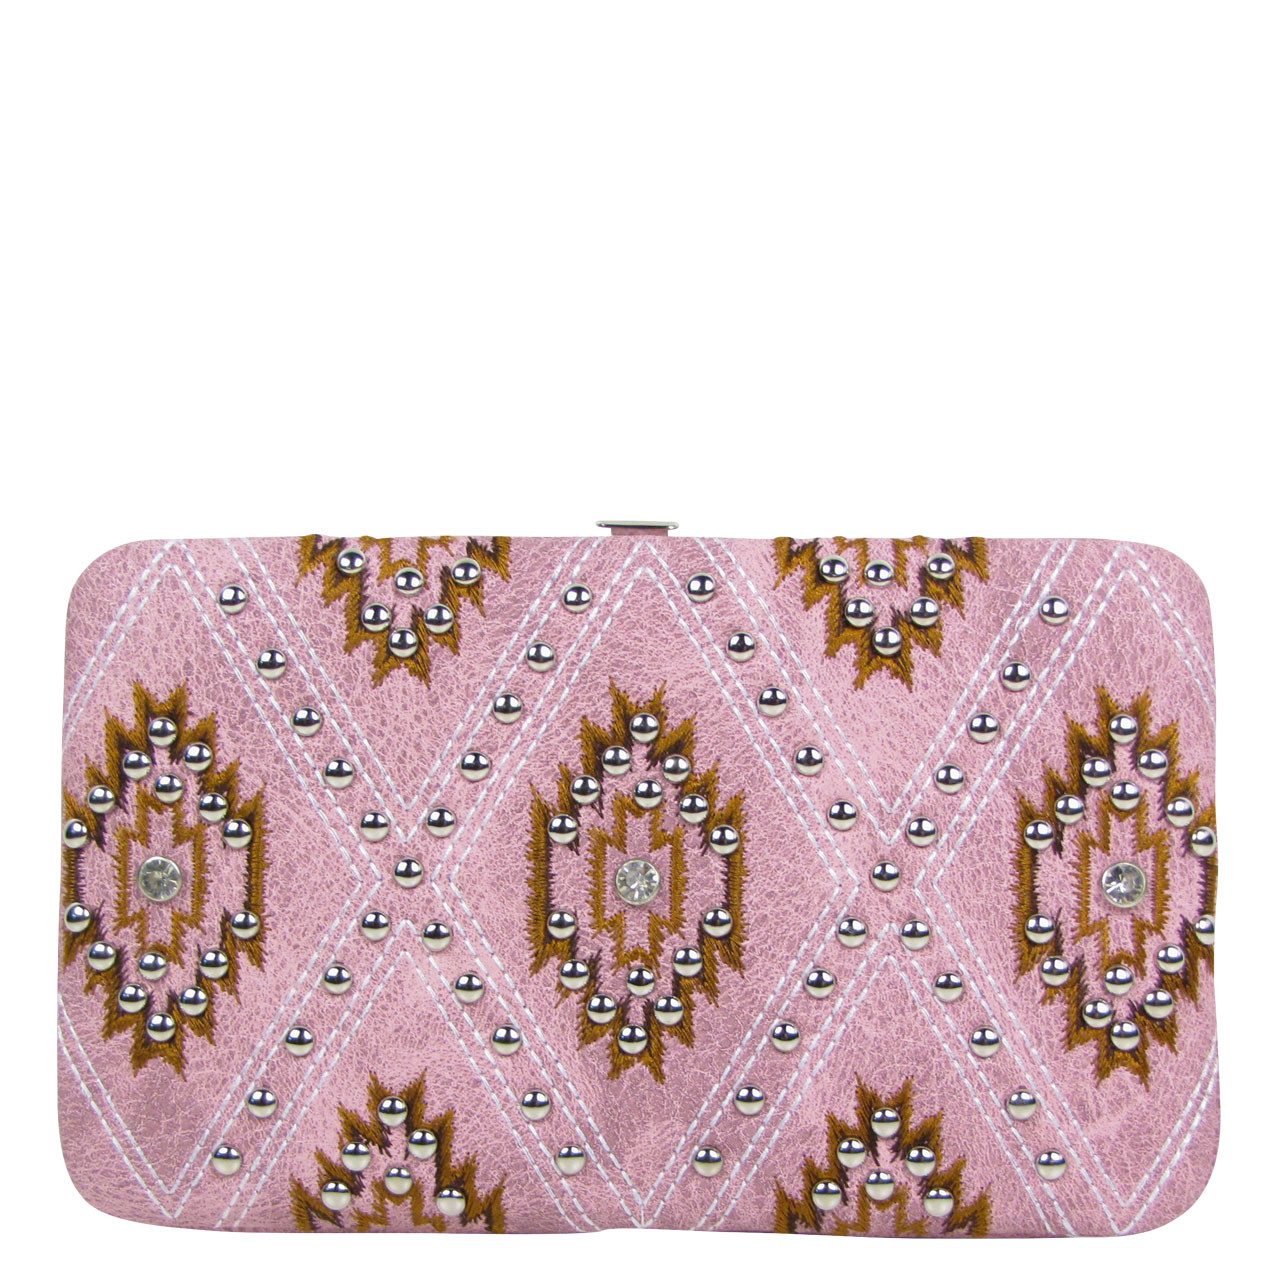 PINK STUDDED RHINESTONE LOOK FLAT THICK WALLET FW2-12122PNK